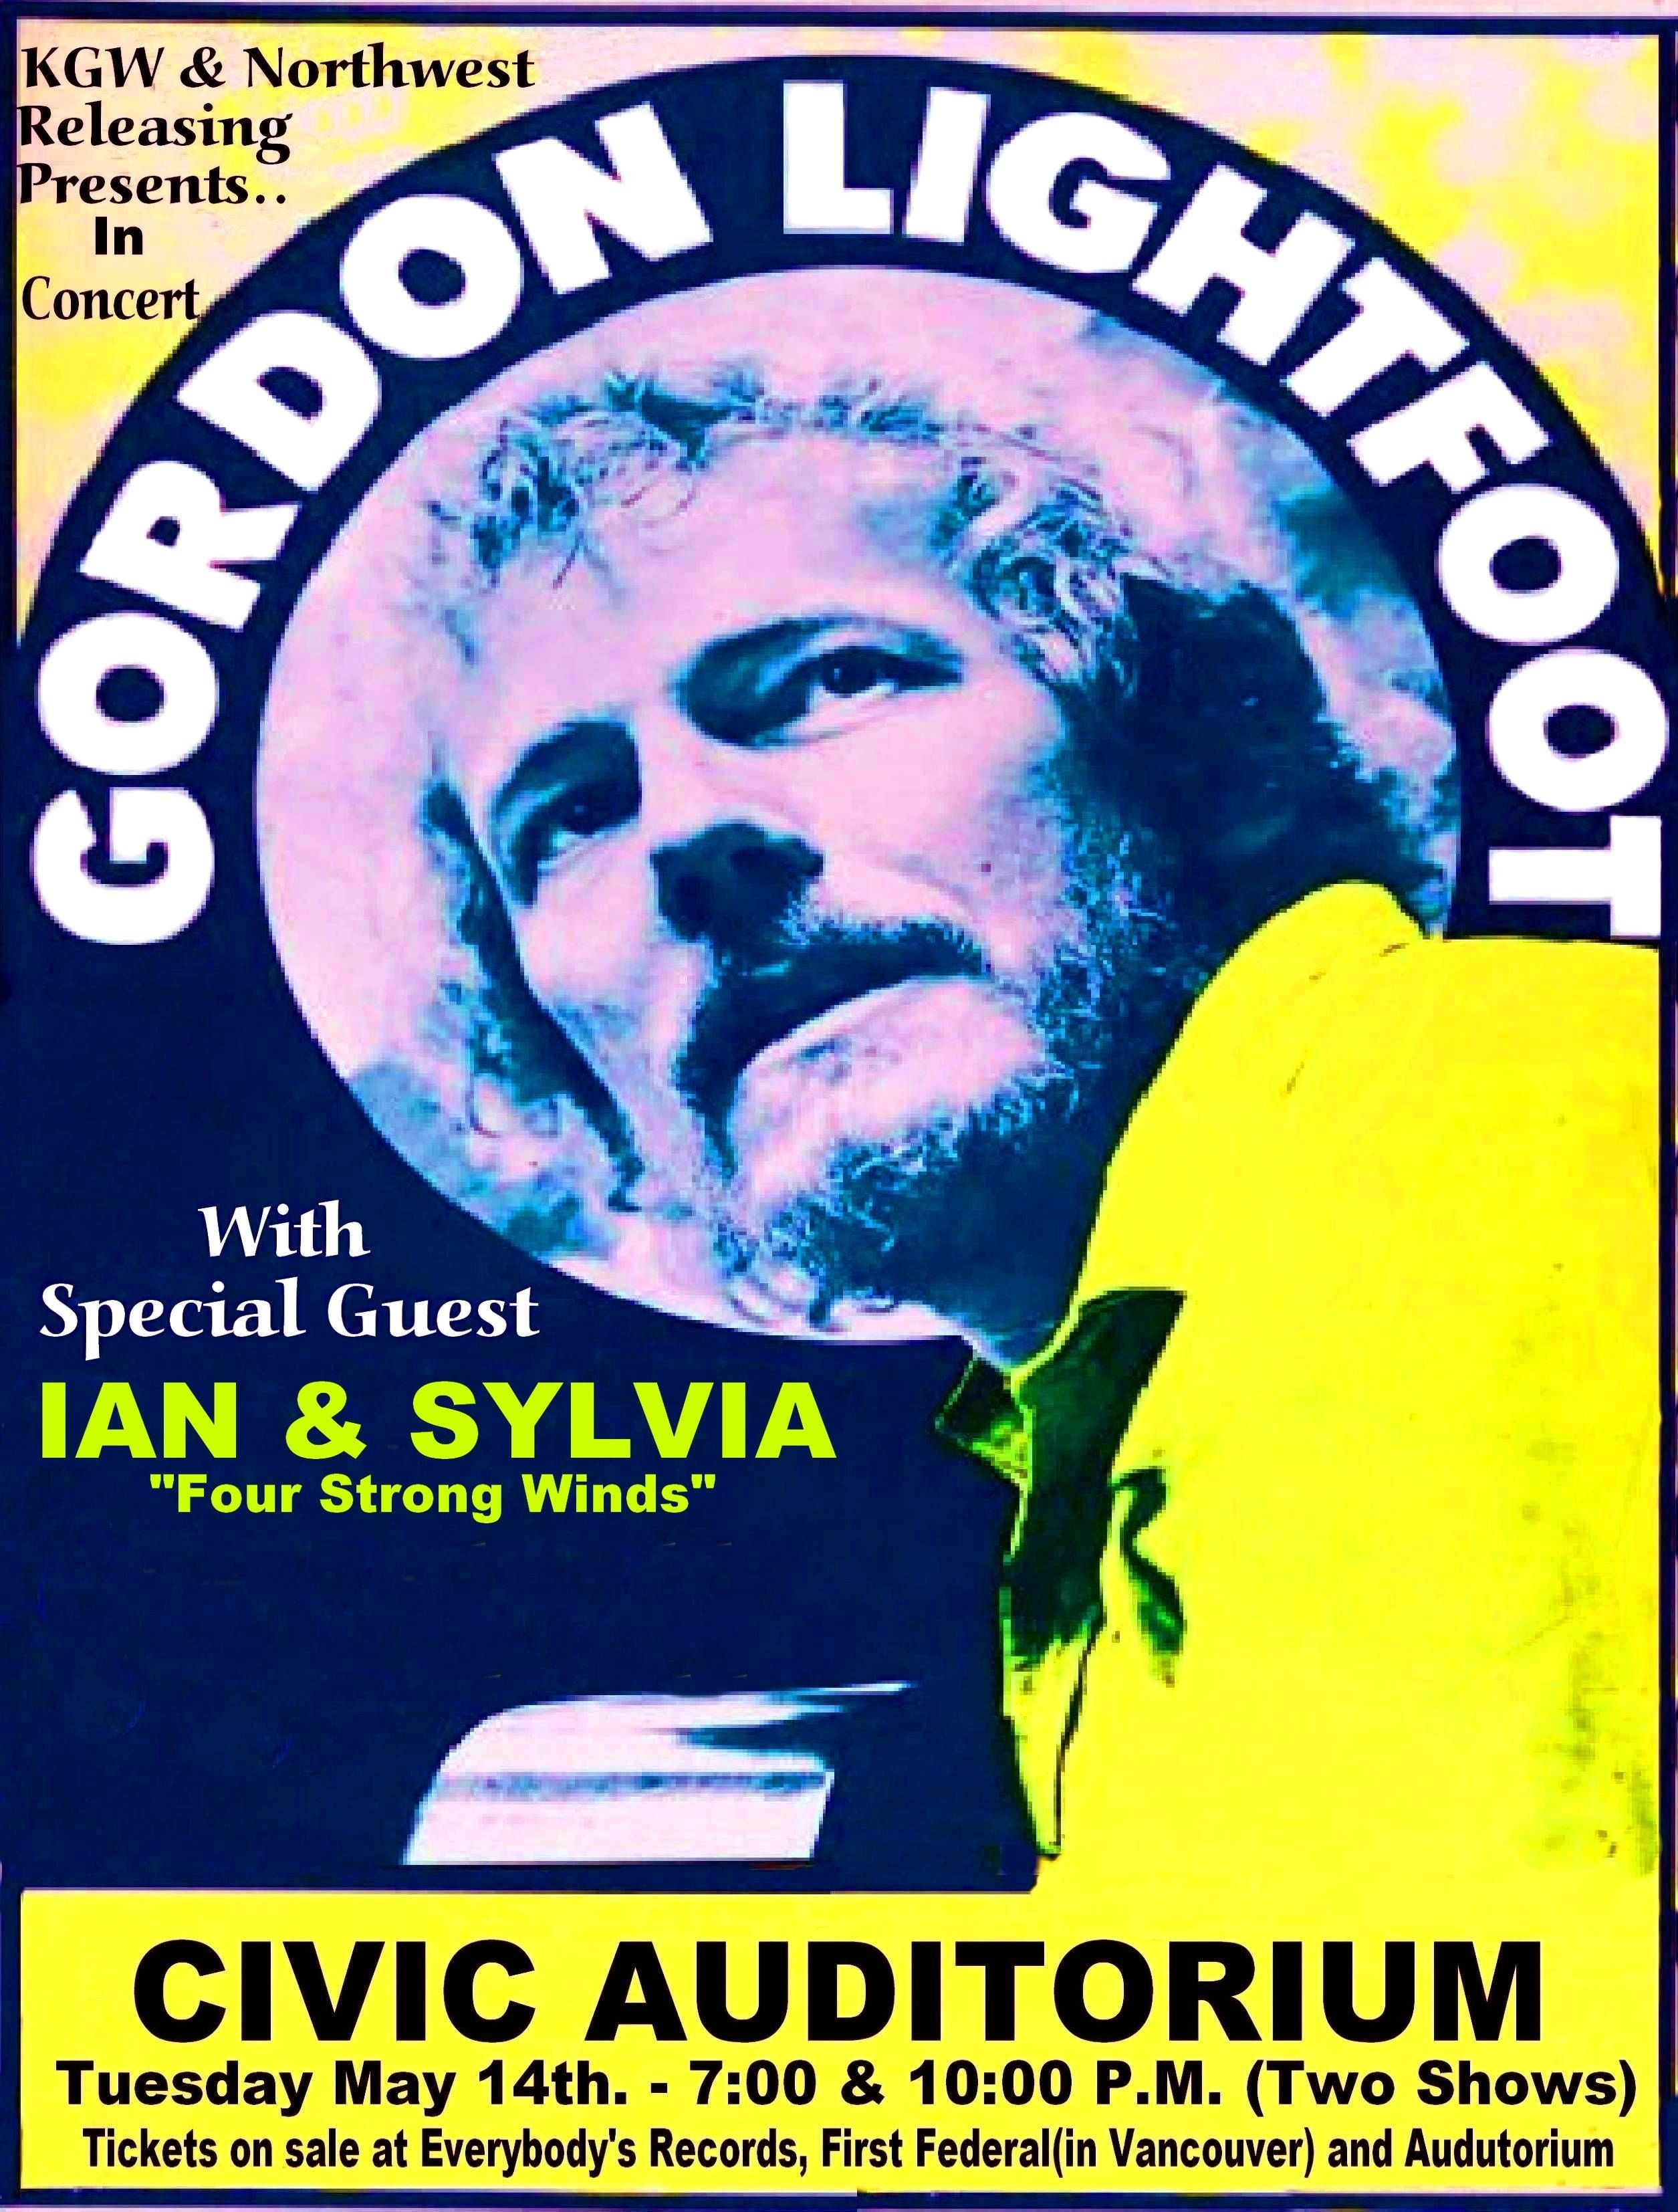 Gord Lightfoot CONCERT POSTER | cool concert posters in 2019